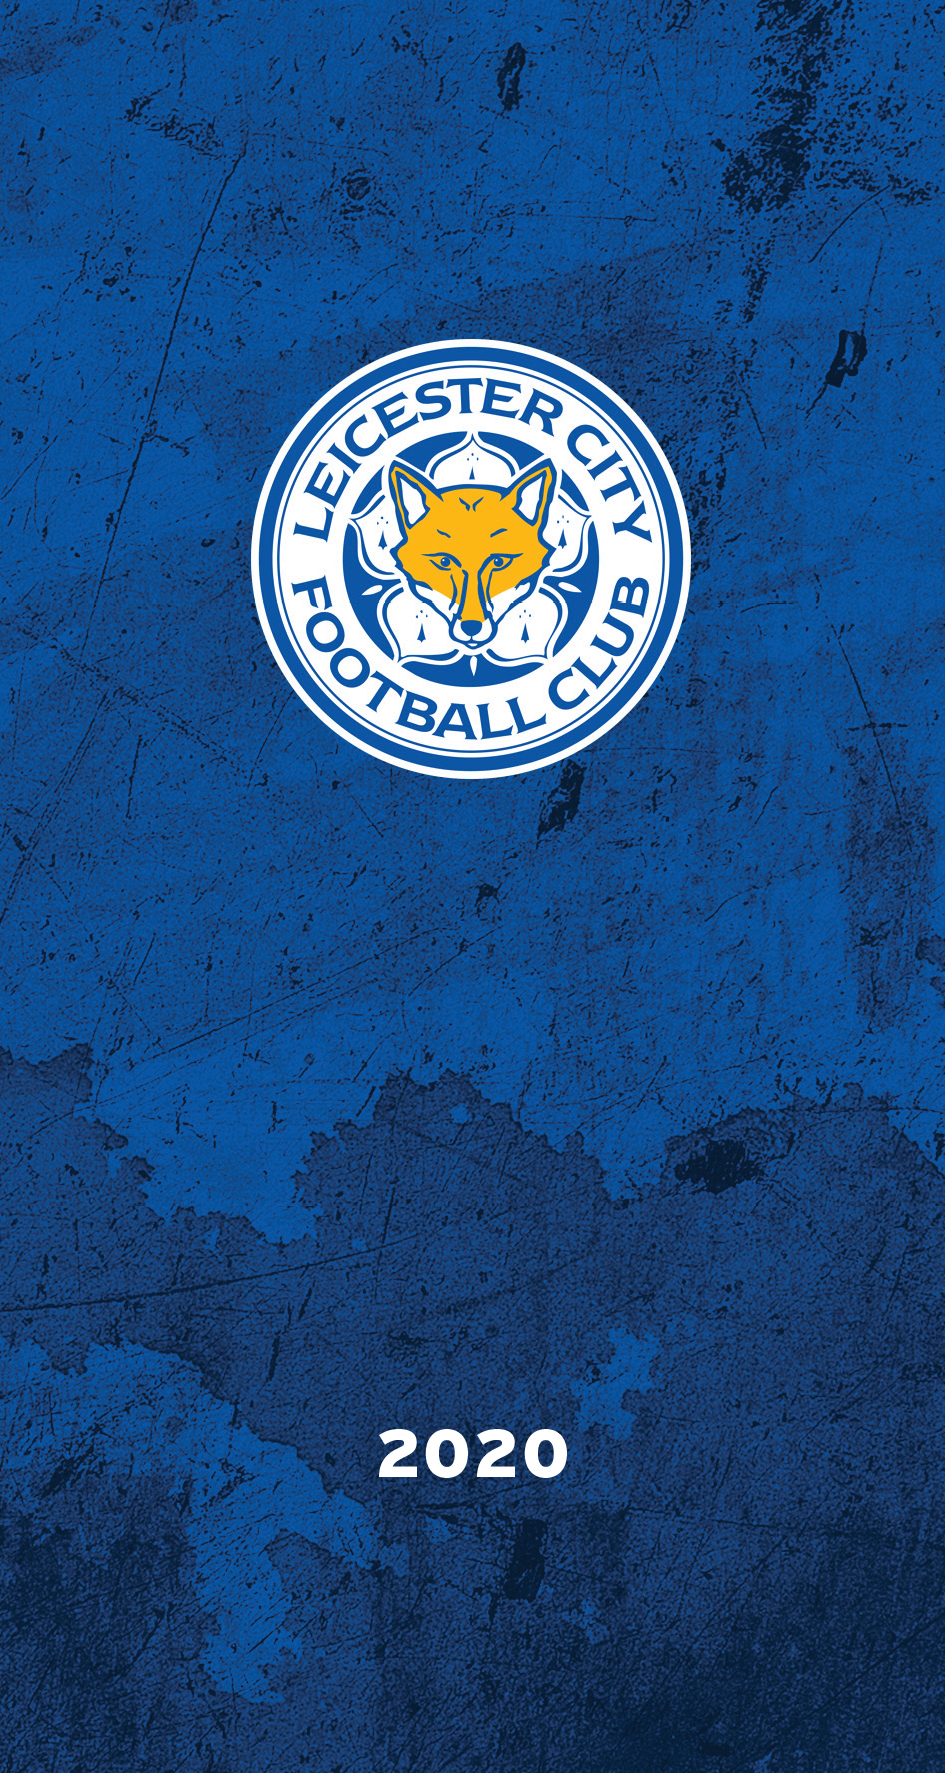 Leicester City Fc Diary 2020 G2 Entertainment